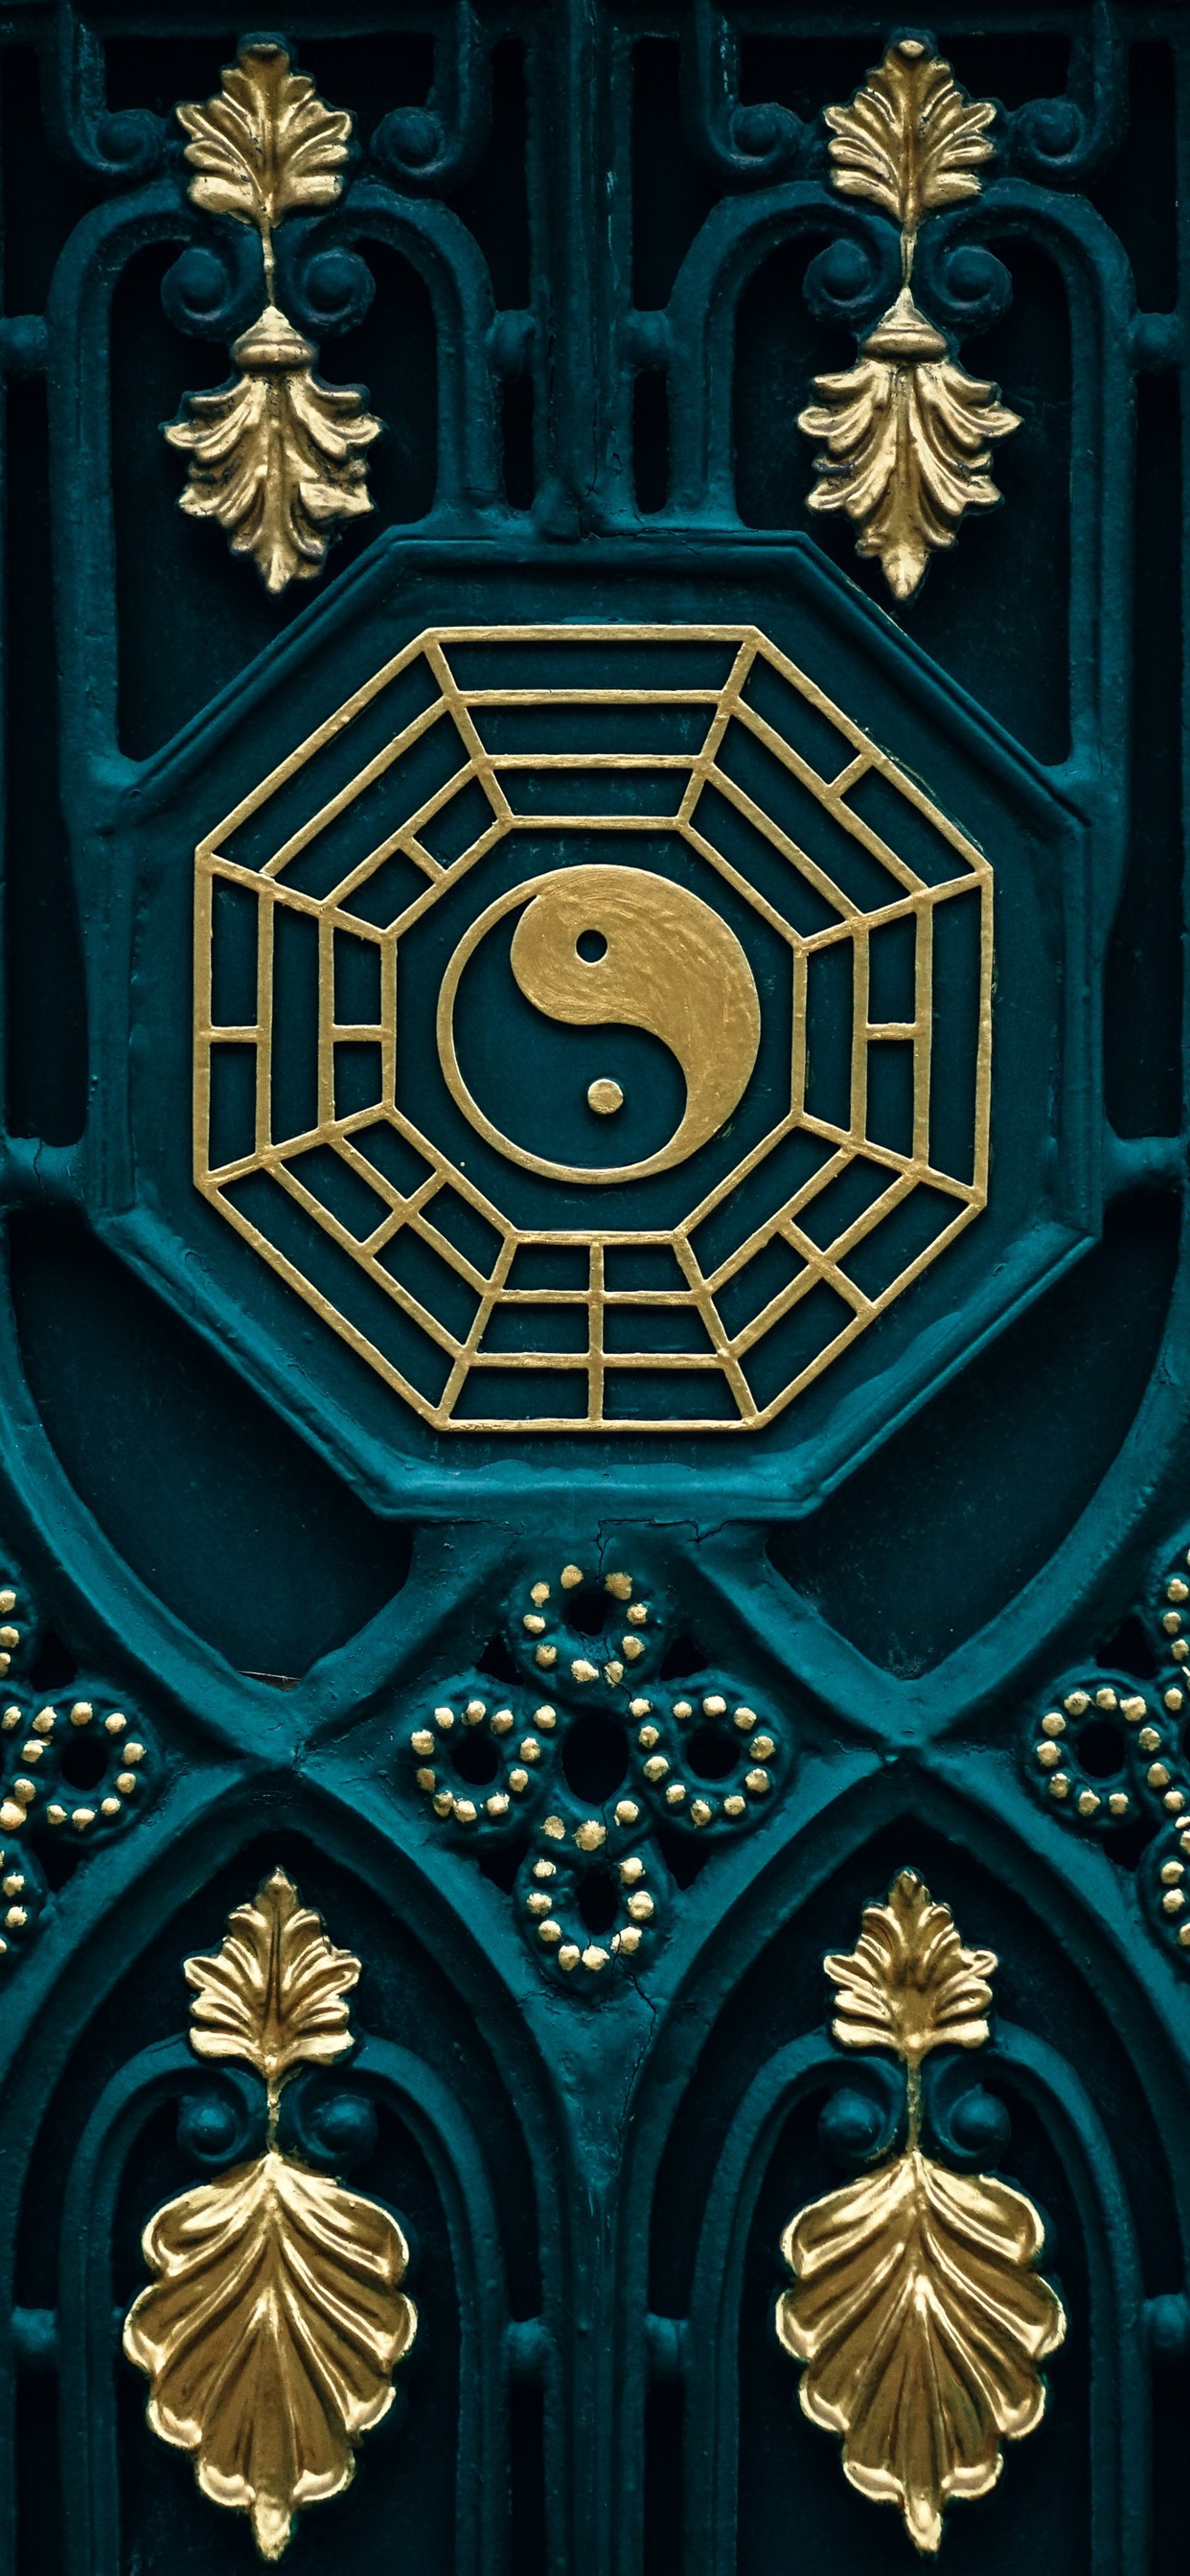 Bagua map yin yang door 1242x2688 iPhone XS Max wallpaper 1242x2688